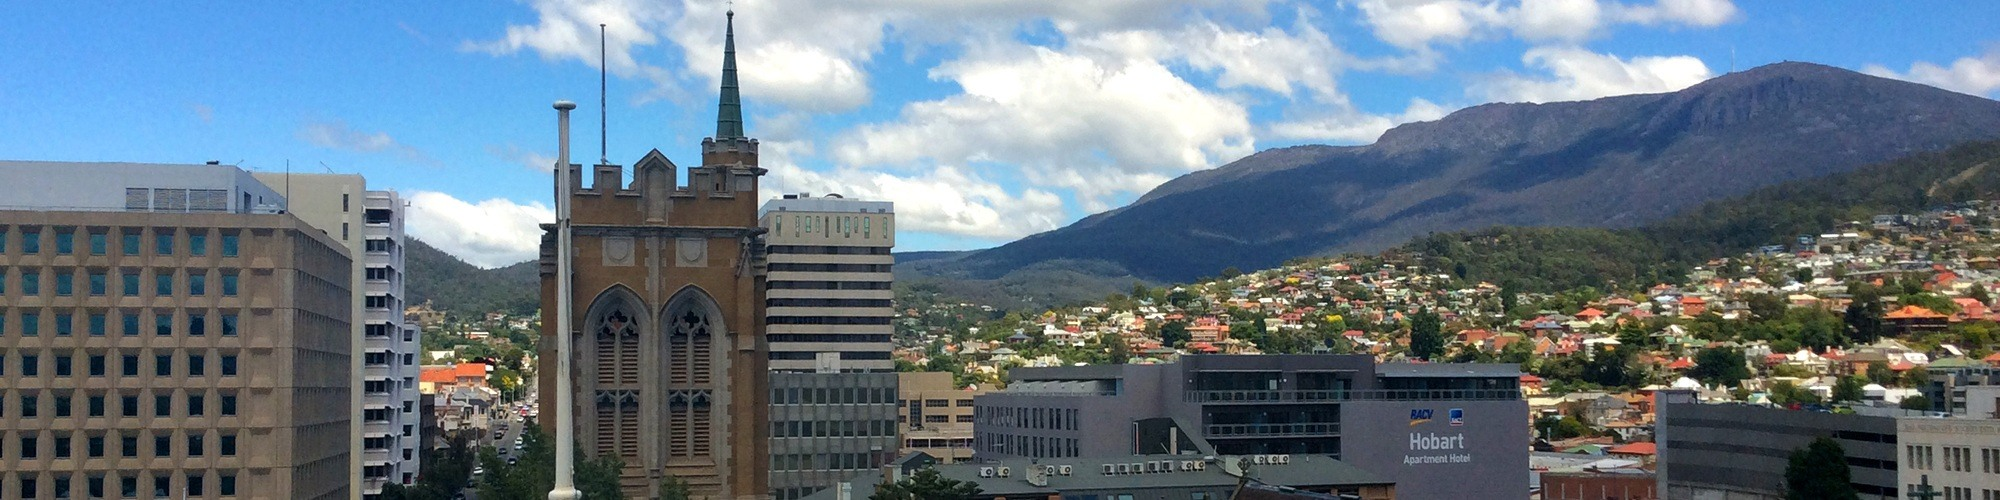 banner-reserve-bank-building-hobart-office-view.jpg